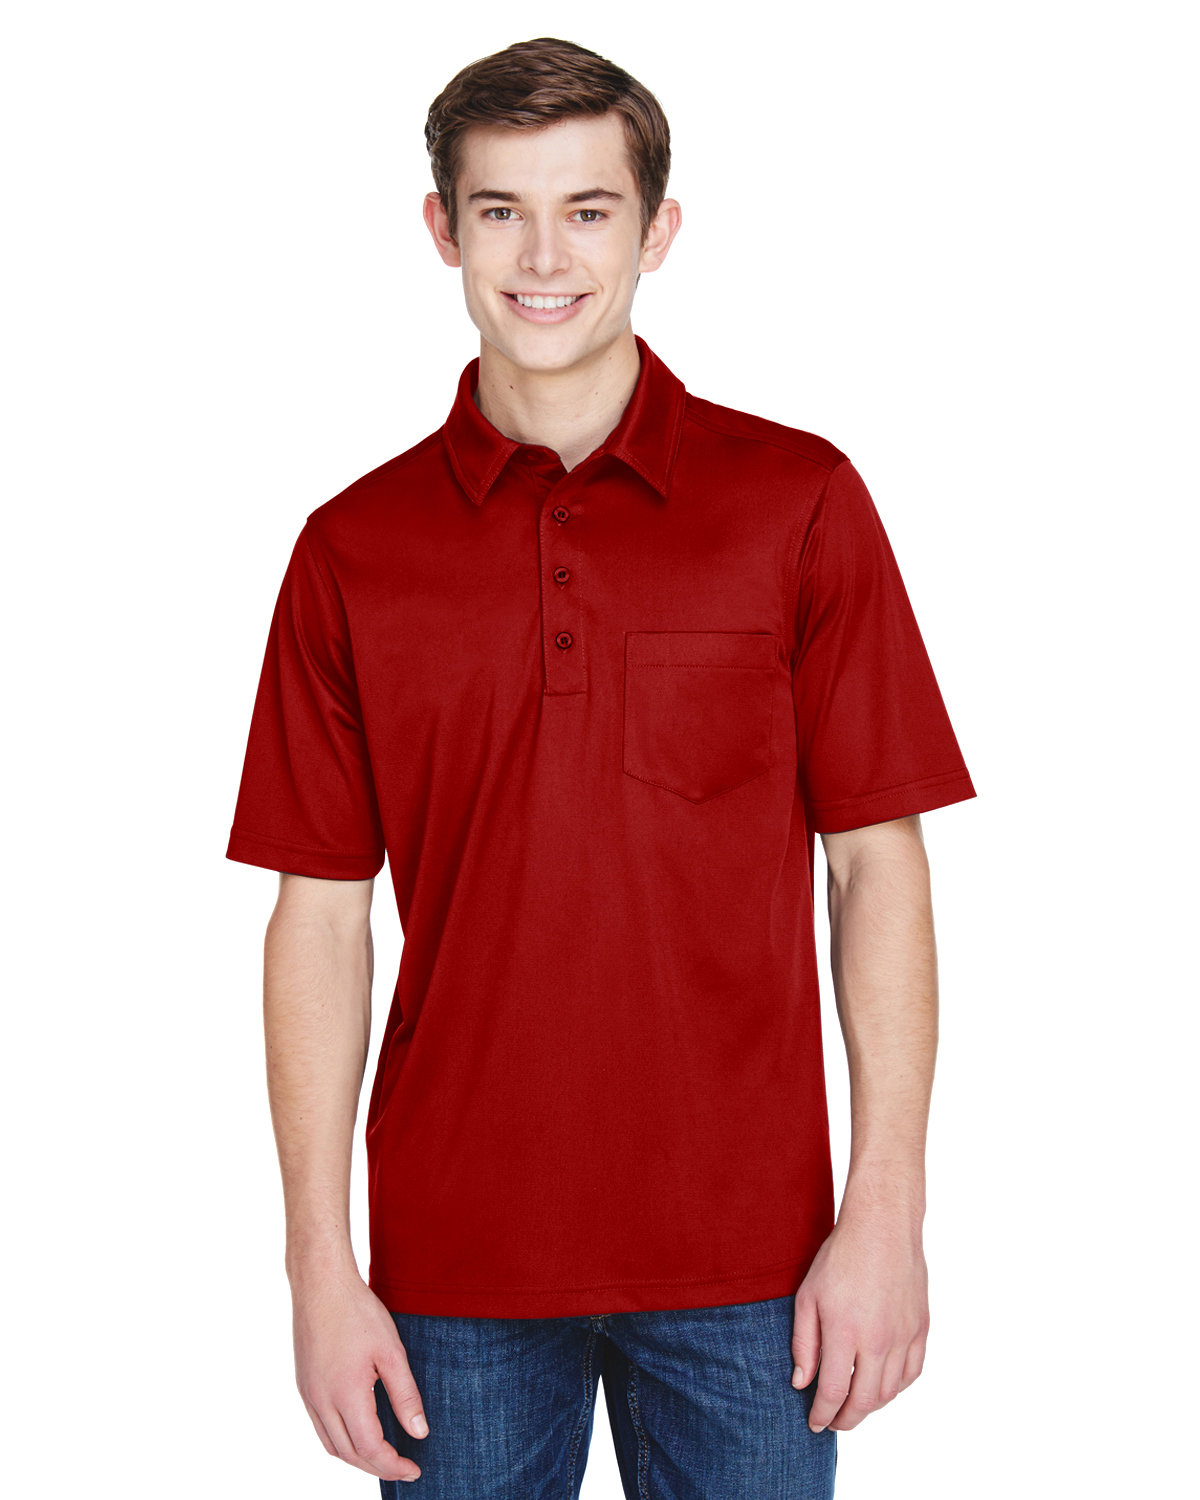 Extreme Men's Eperformance™ Shift Snag Protection Plus Polo CLASSIC RED